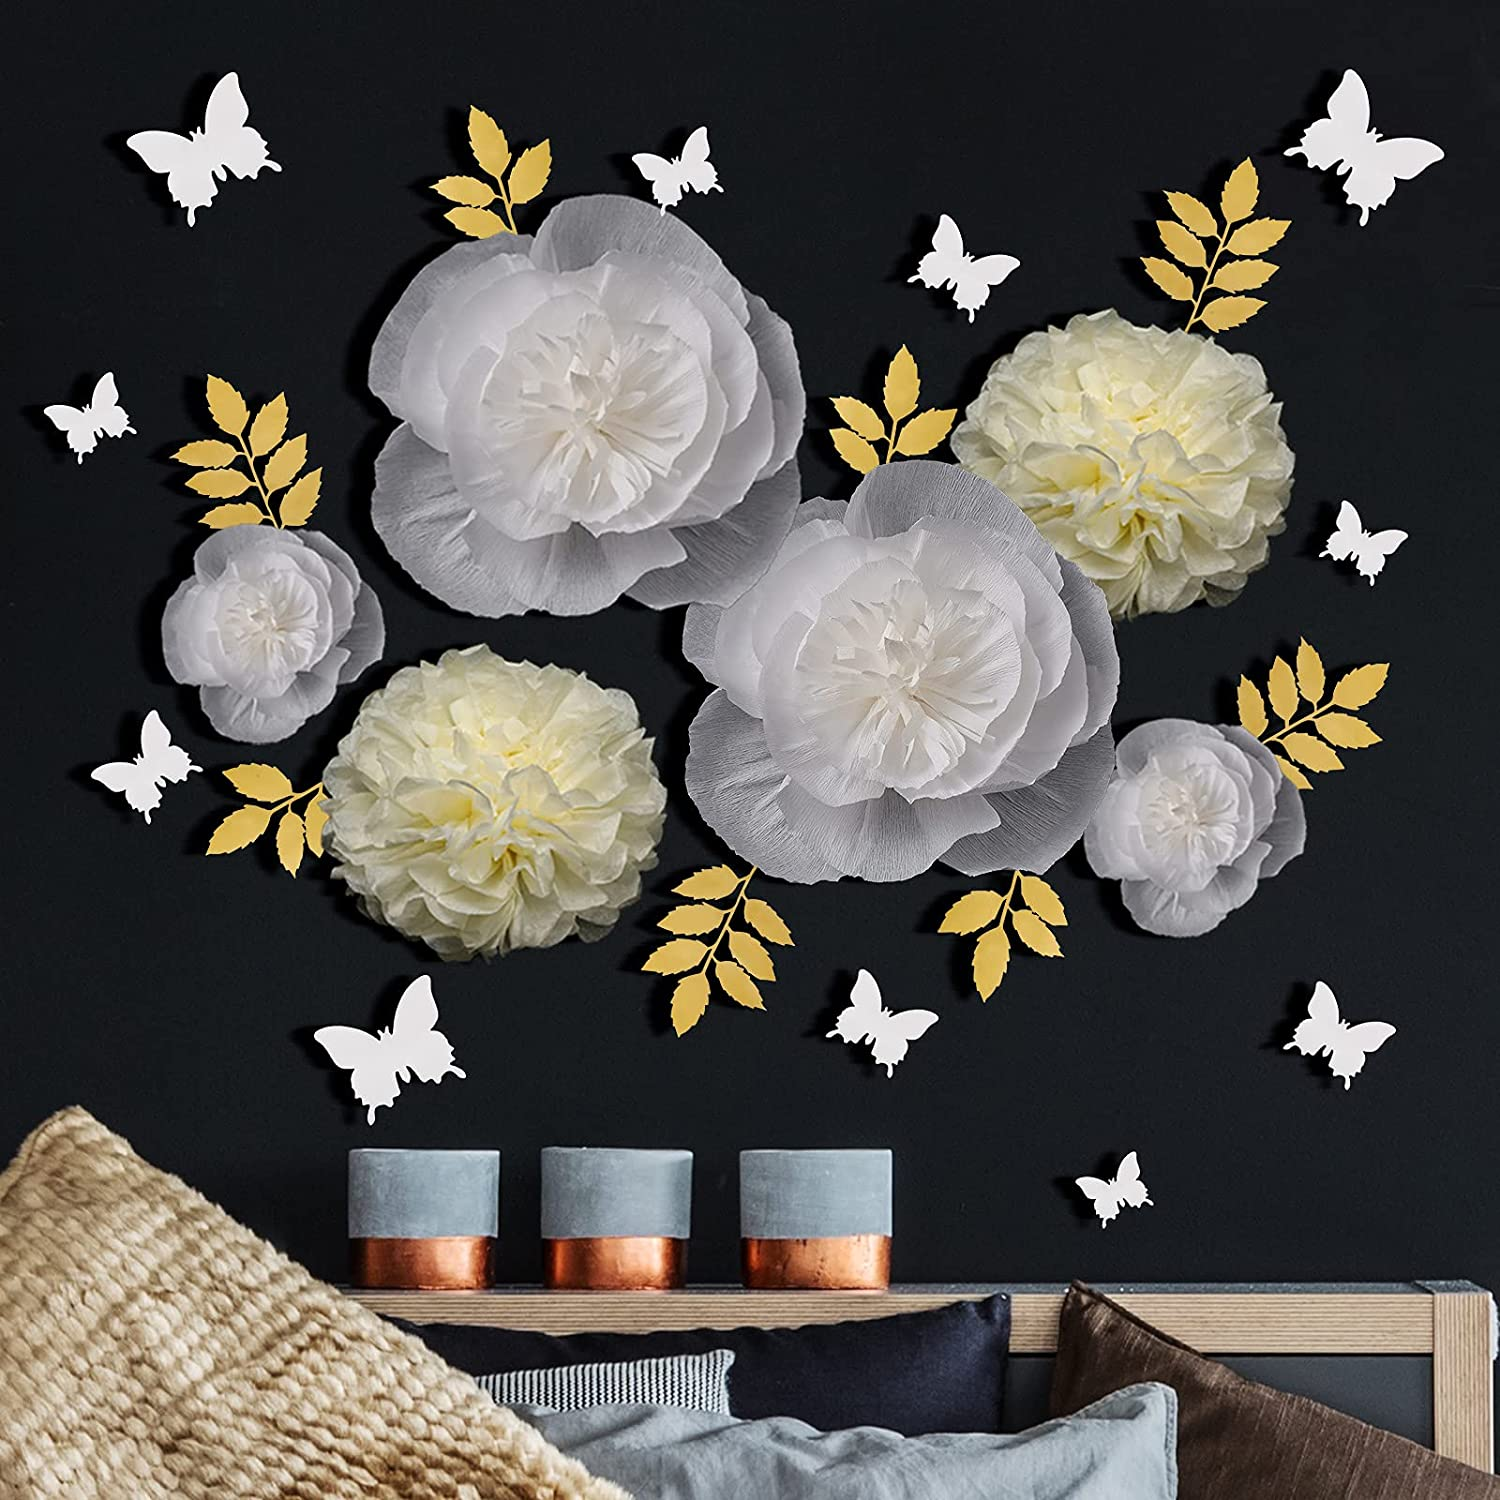 26 Pieces White Paper Flower Decorations 3D Butterfly Sticker and Gold Leaves 3D Paper Flowers Wall Decor Butterfly Wall Decals for Wedding Baby Room Birthday Party Nursery Home Wall Decoration